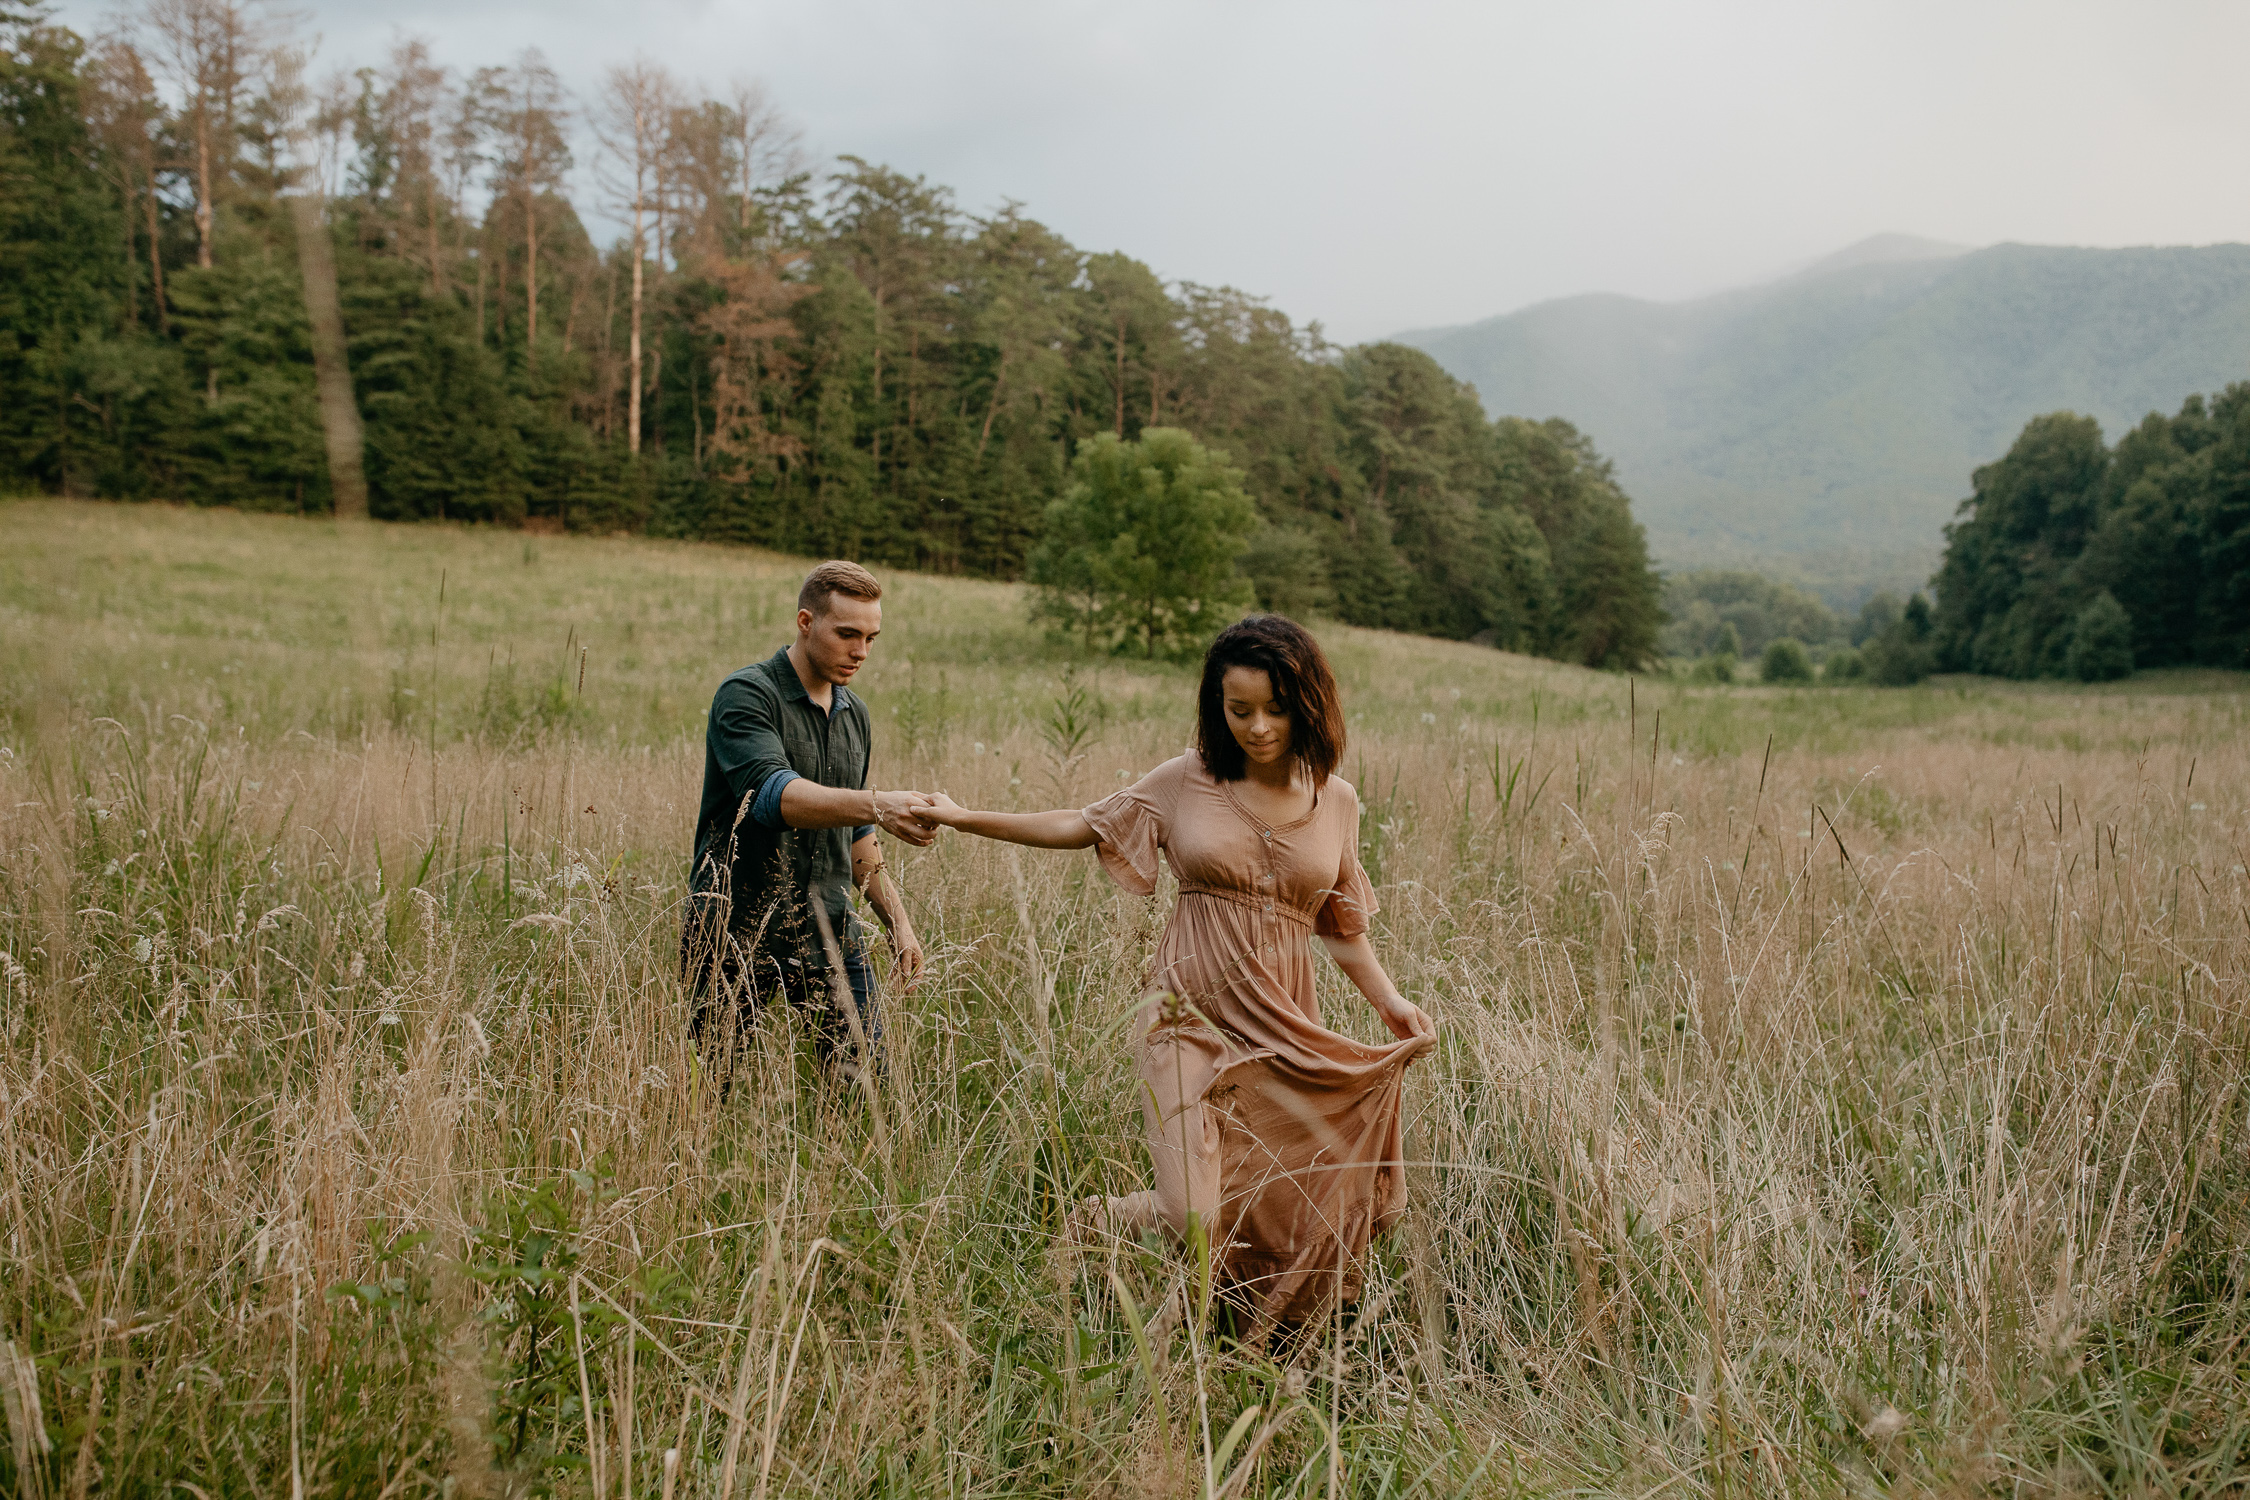 ariannamtorres and isaac engagement session at cades cove smoky mountains elopement-97.jpg